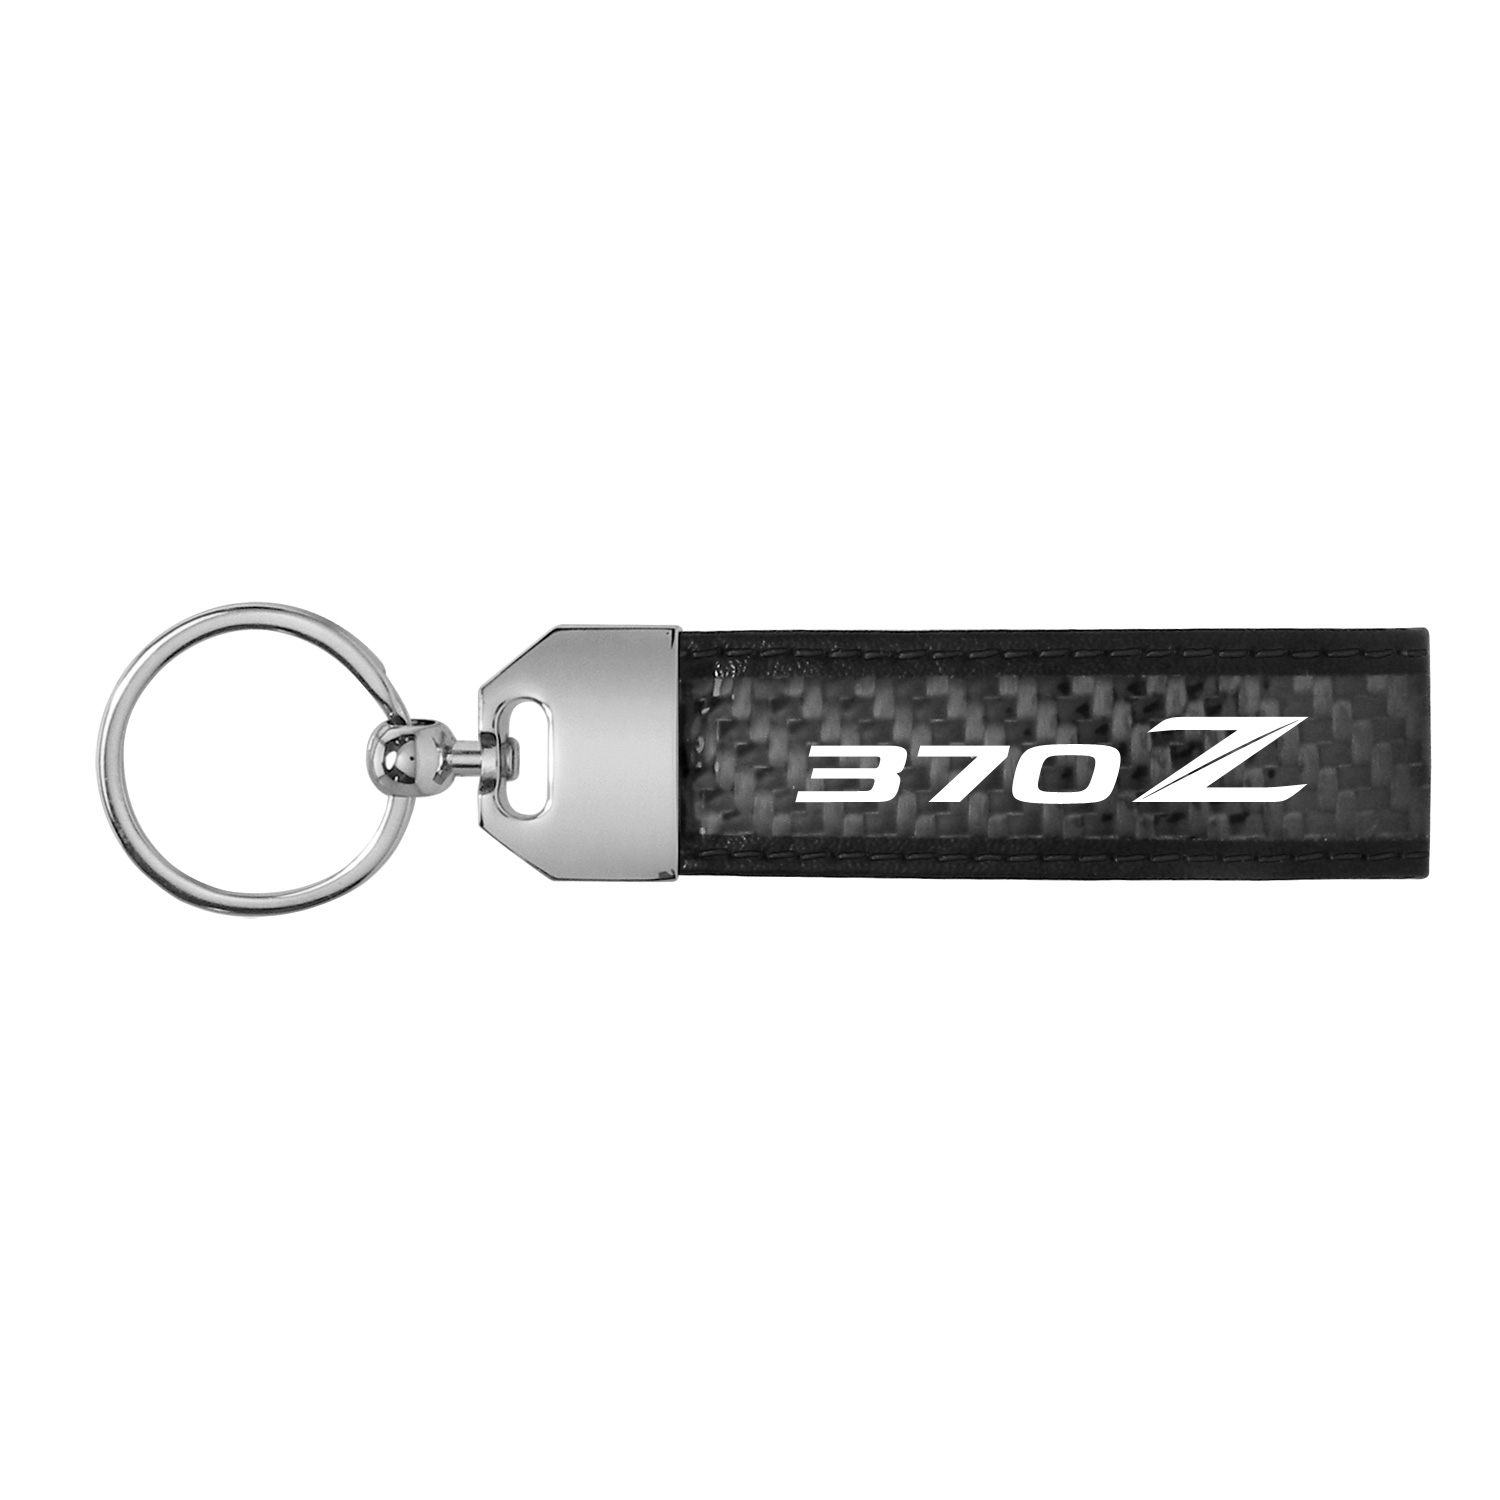 Nissan 370Z Real Carbon Fiber Loop Key Chain with Black Stitching